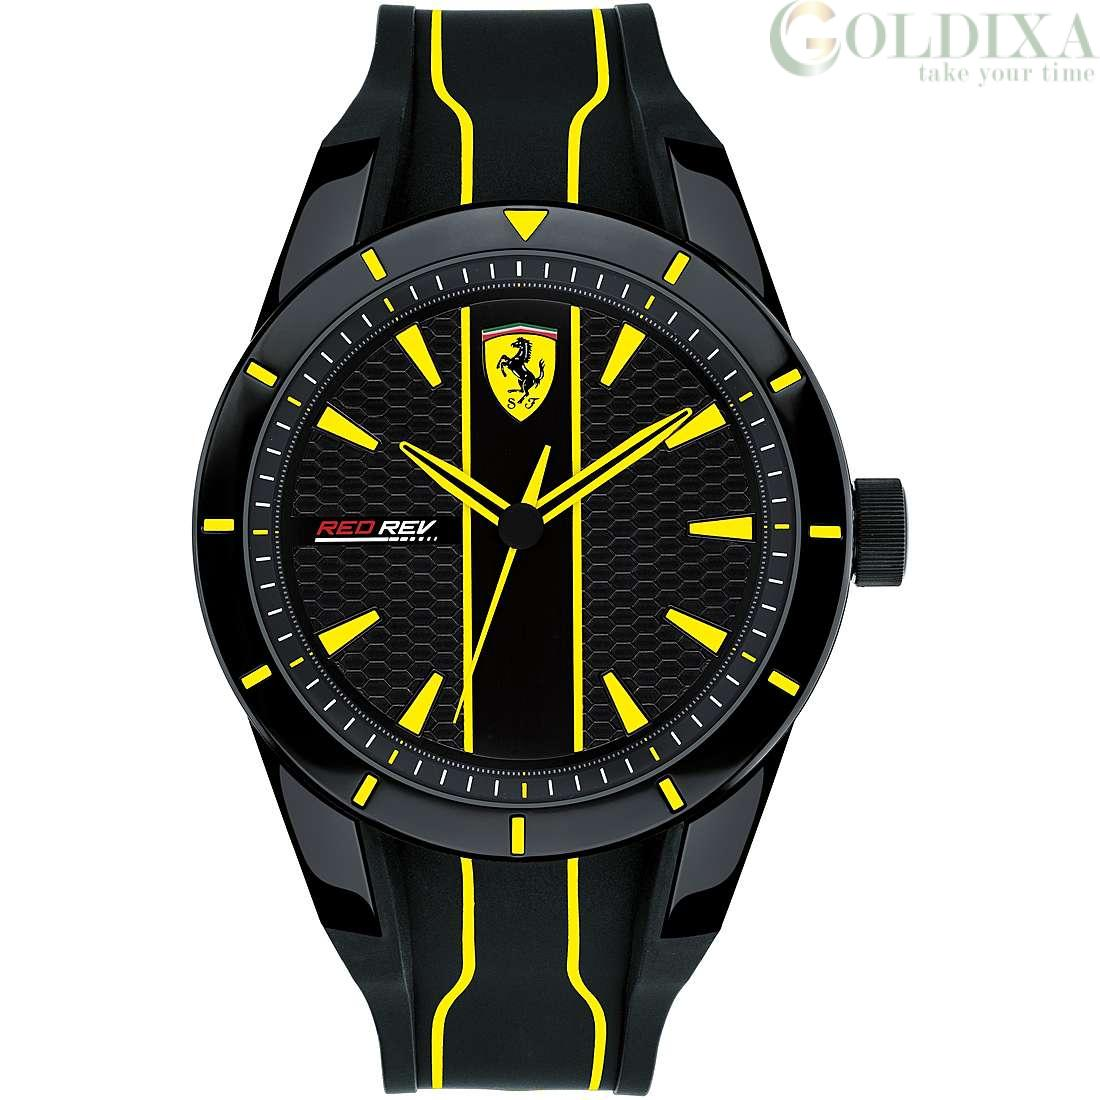 Watches Scuderia Ferrari Watch Only Time Man Analog Silicone Strap Redrev Collection Fer0830482